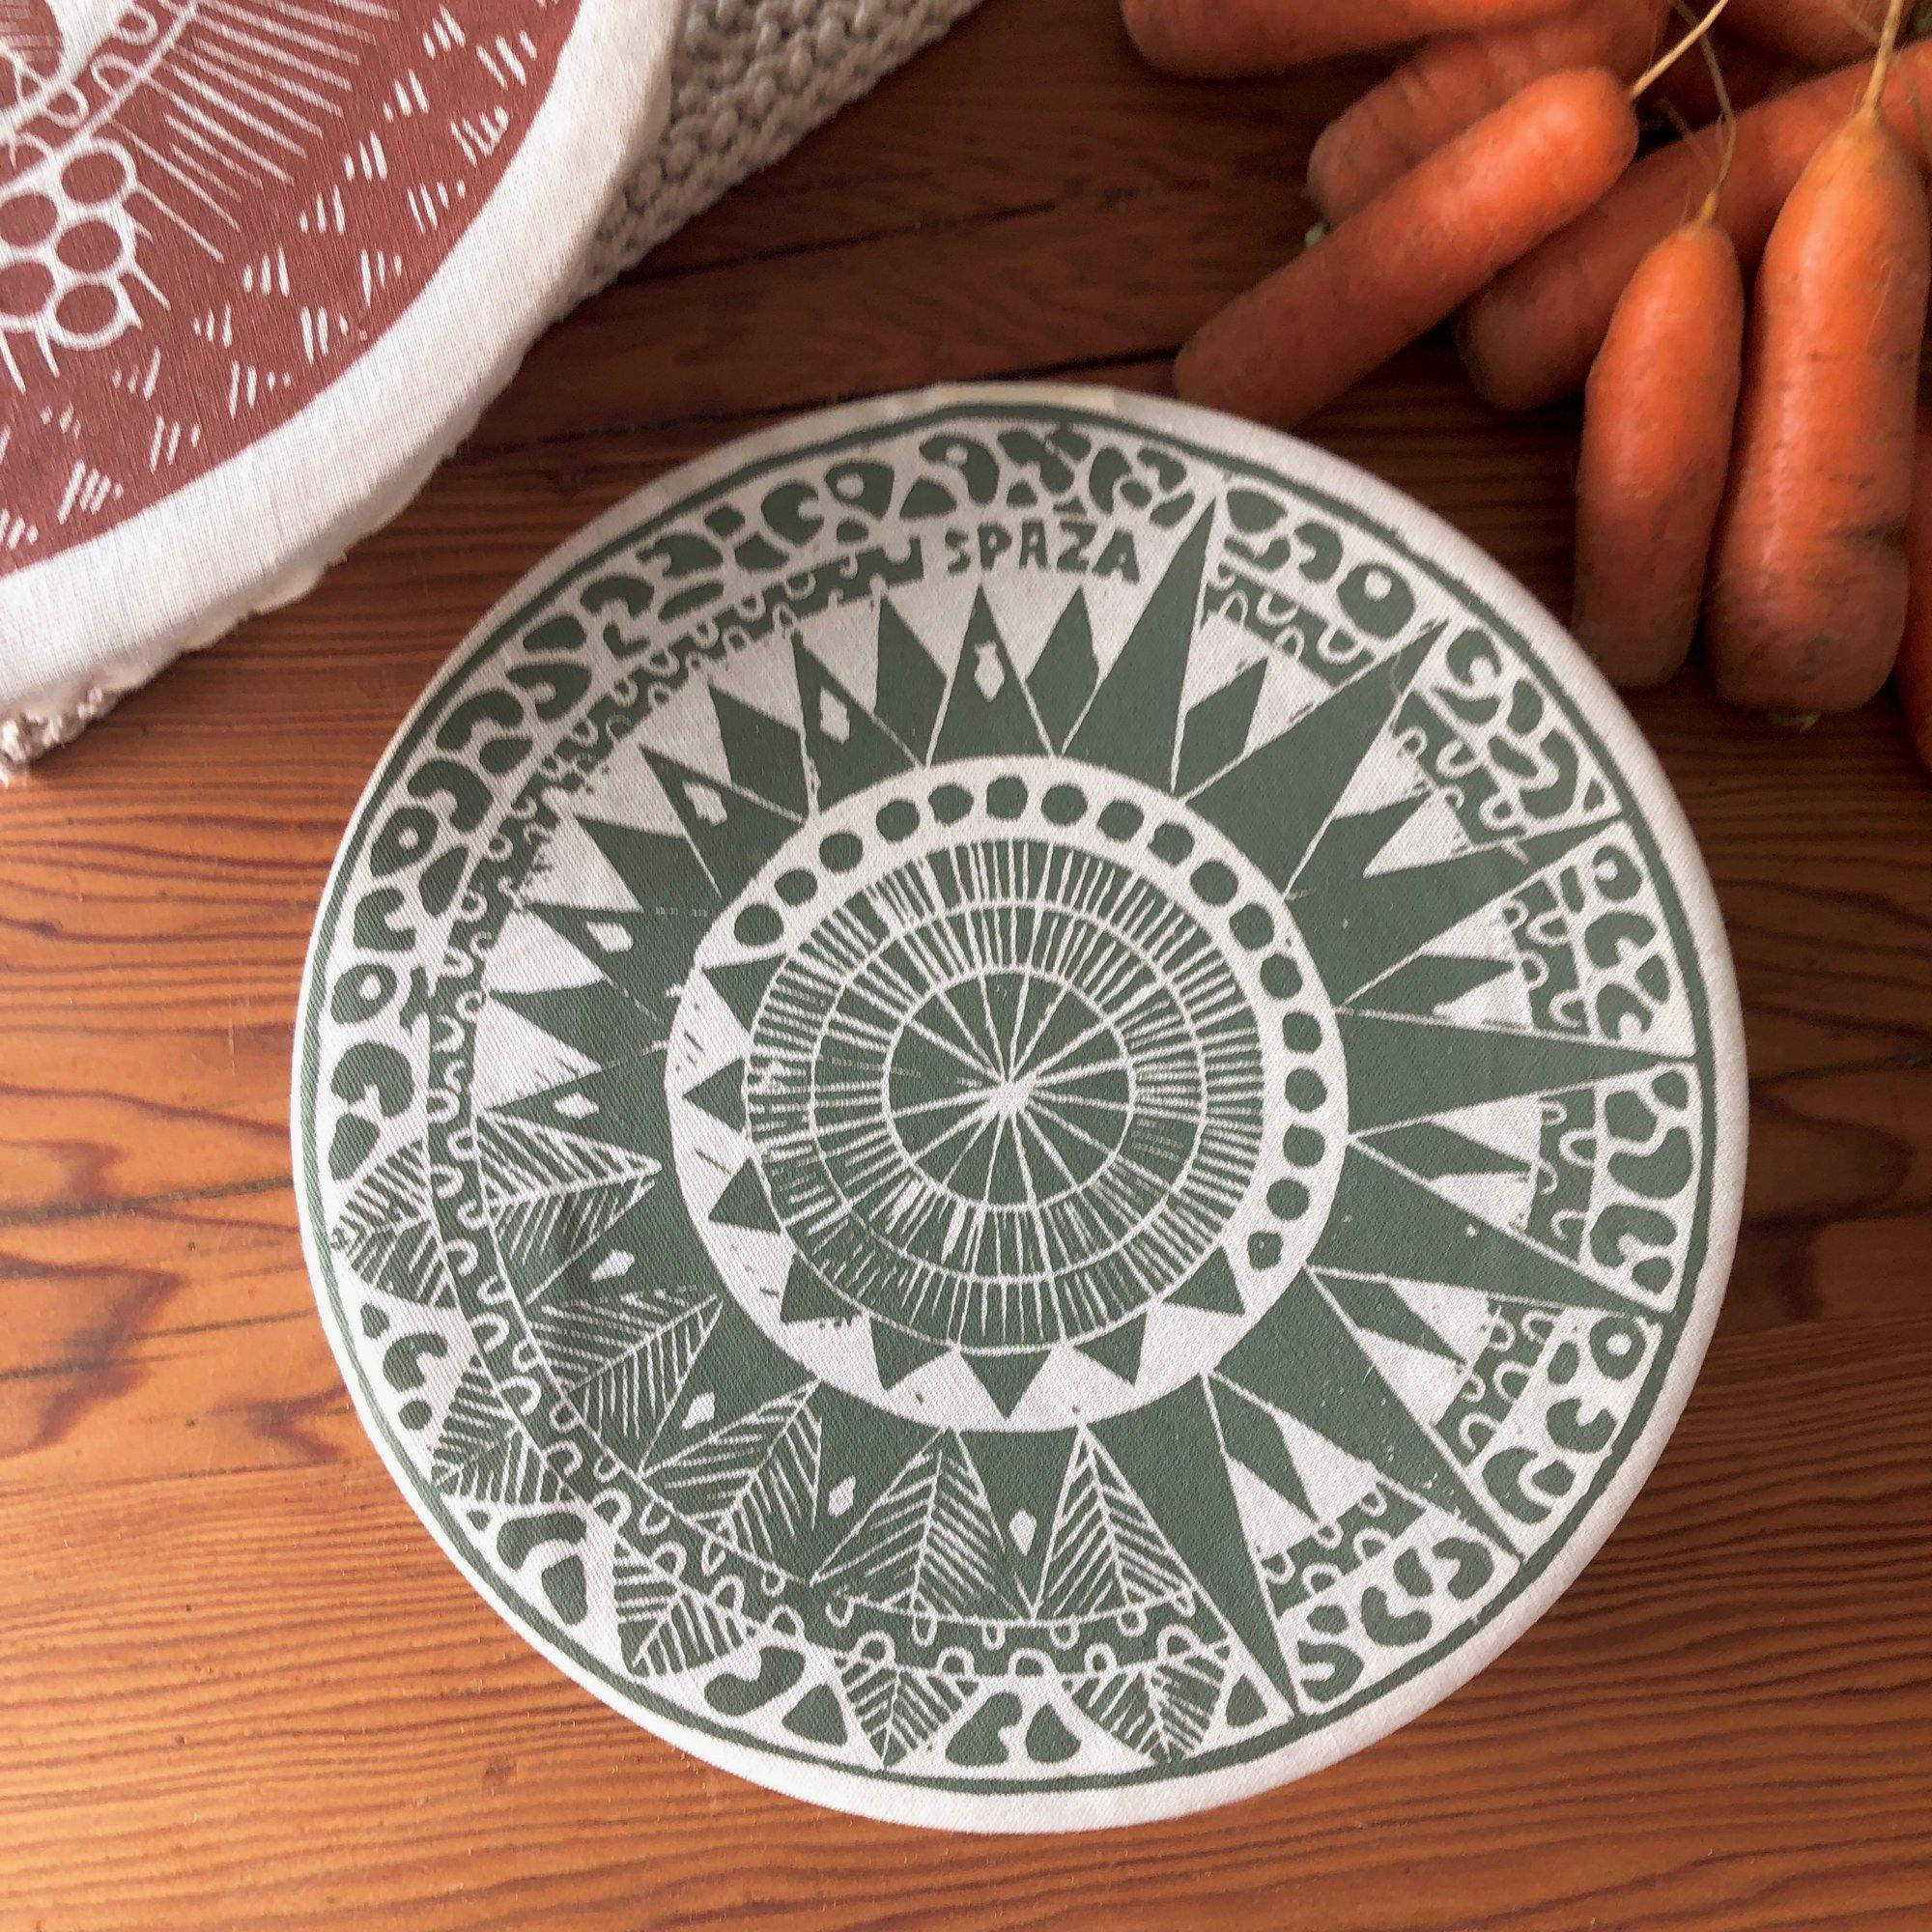 Dish and Bowl Cover Small Safari Print | handy single portion or leftover